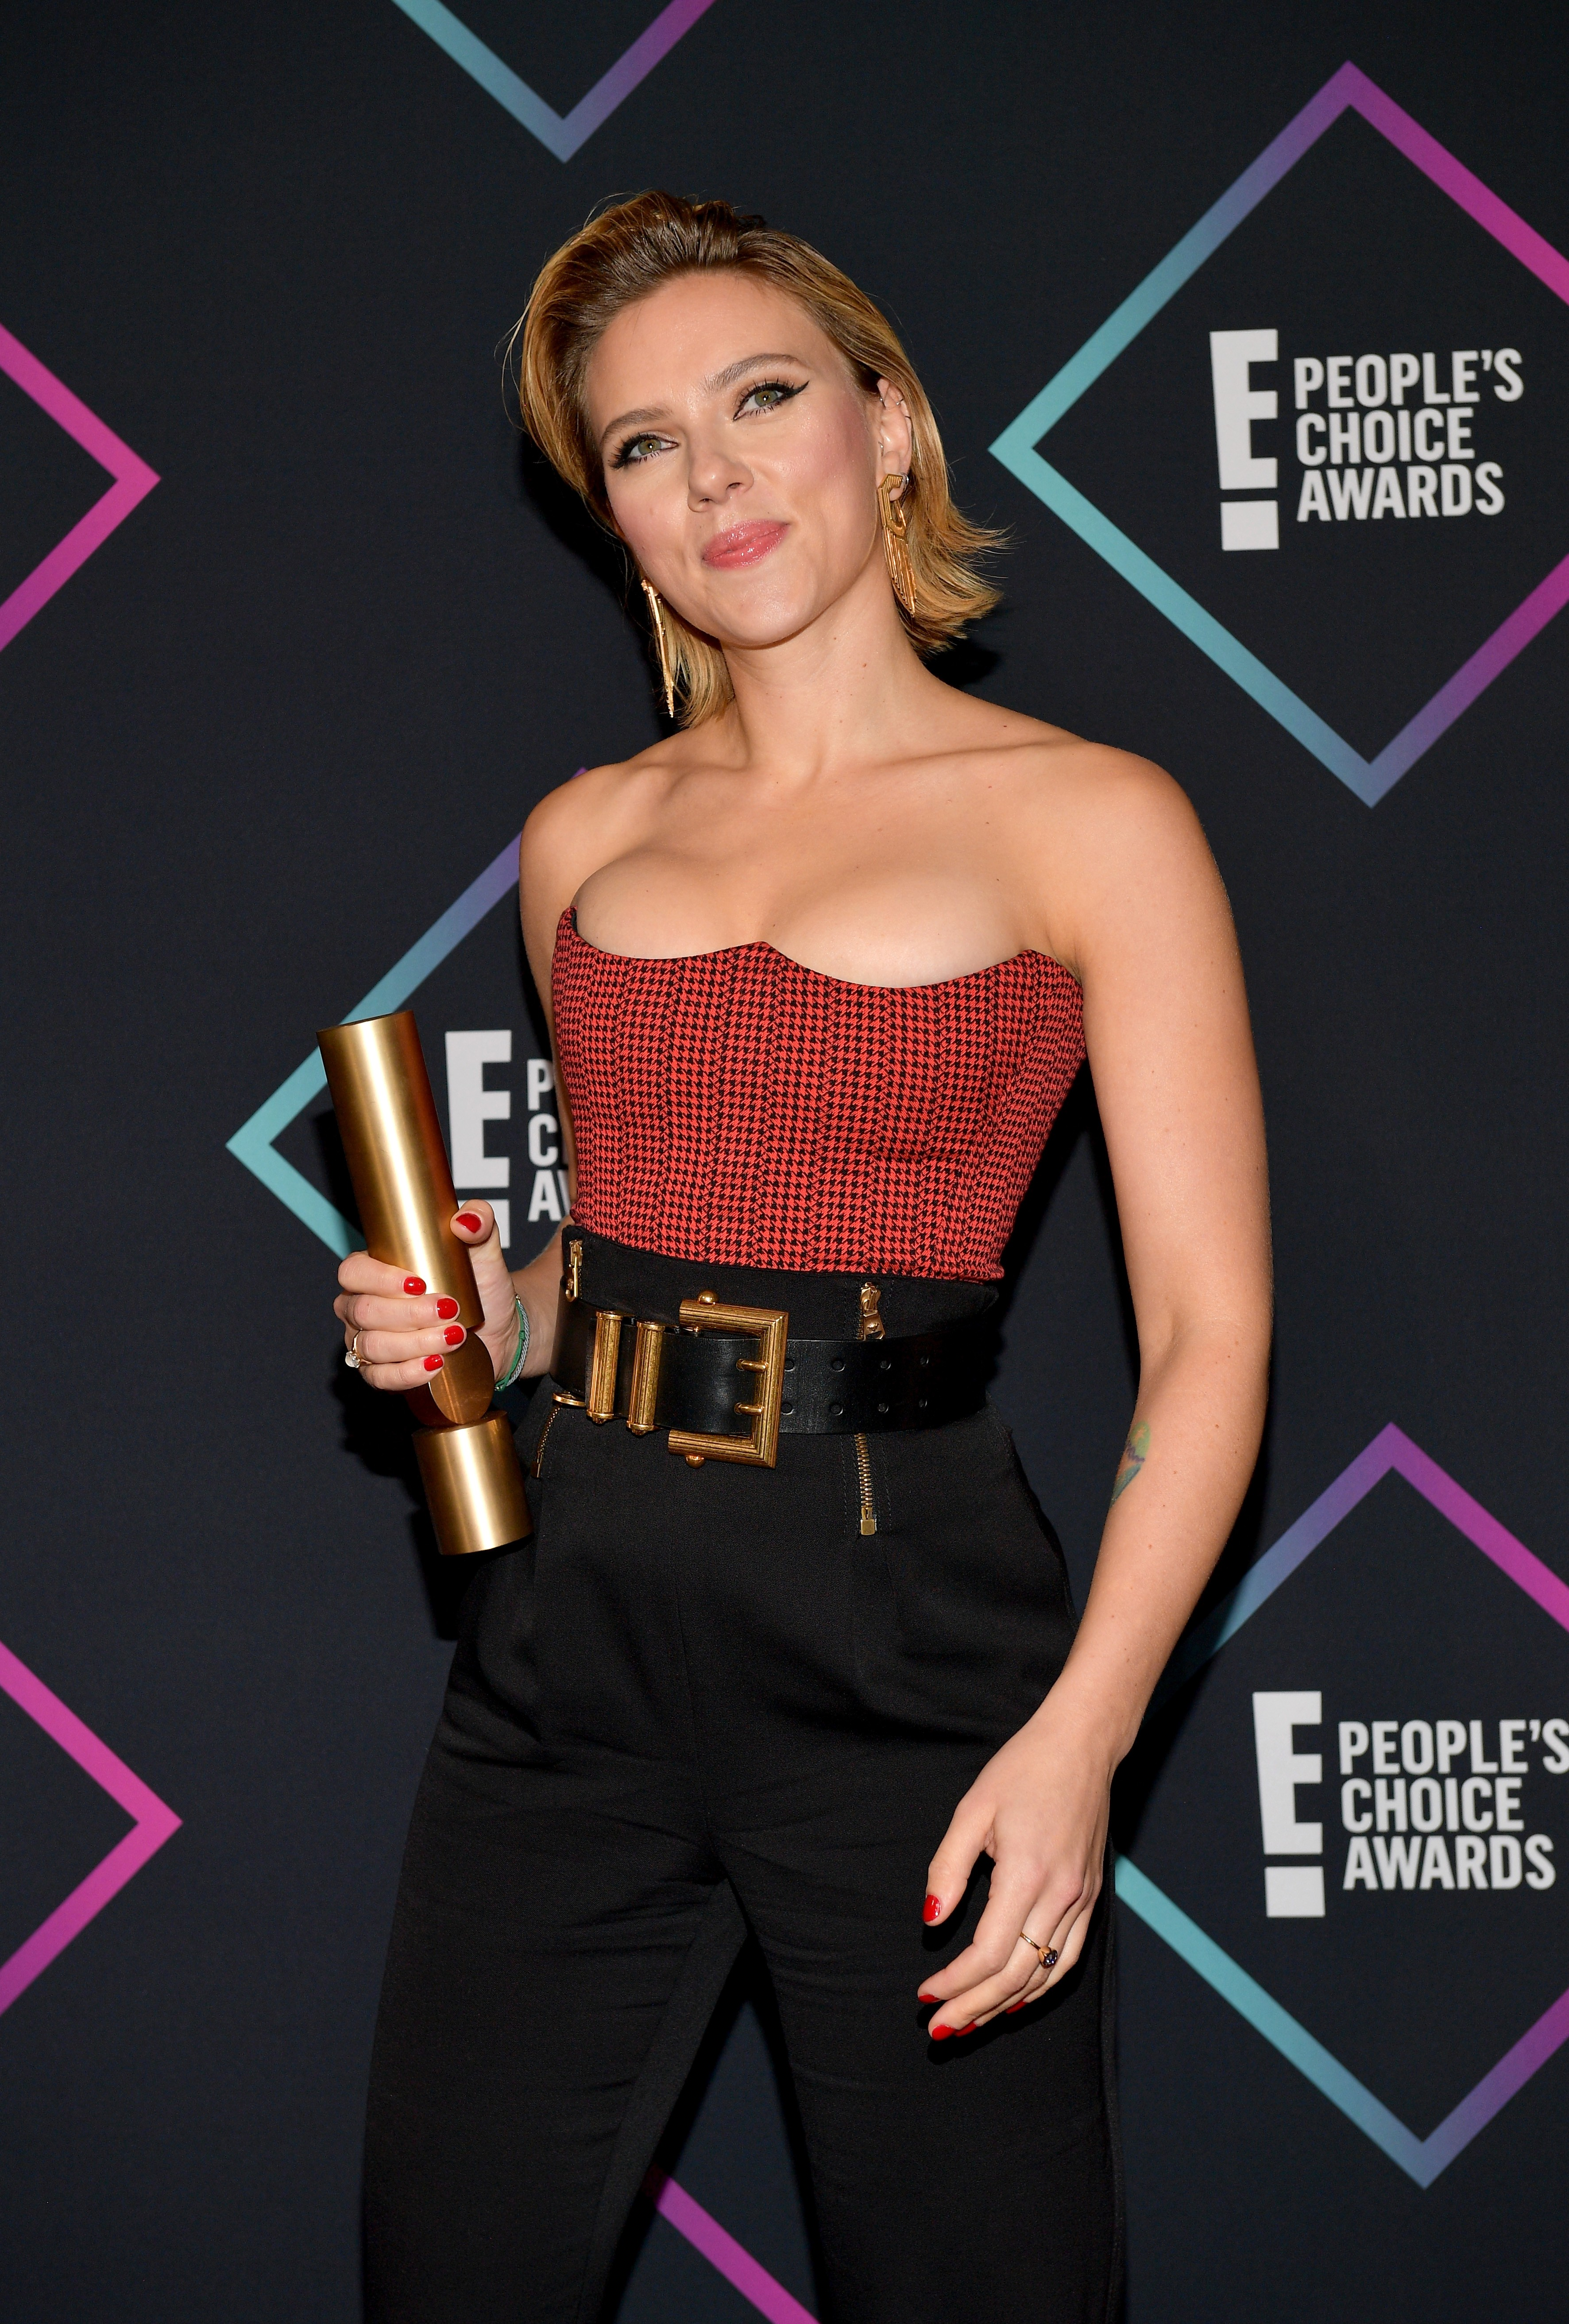 A atriz Scarlett Johansson durante o E! People's Choice Awards 2018 (Foto: Getty Images)